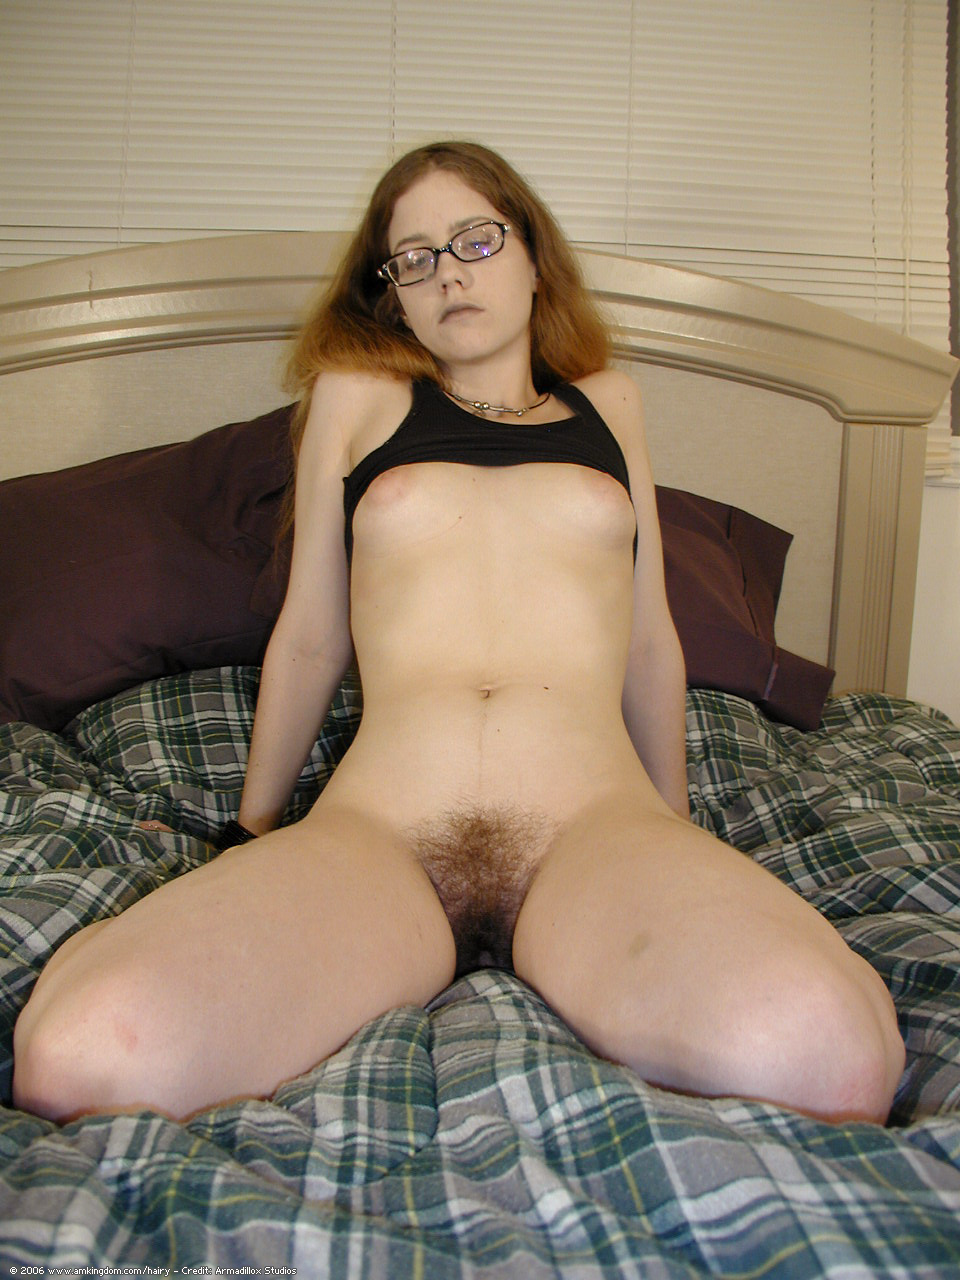 Ugly Nerdy Girls Nude And Ugly Nerdy Teen Girls Photos